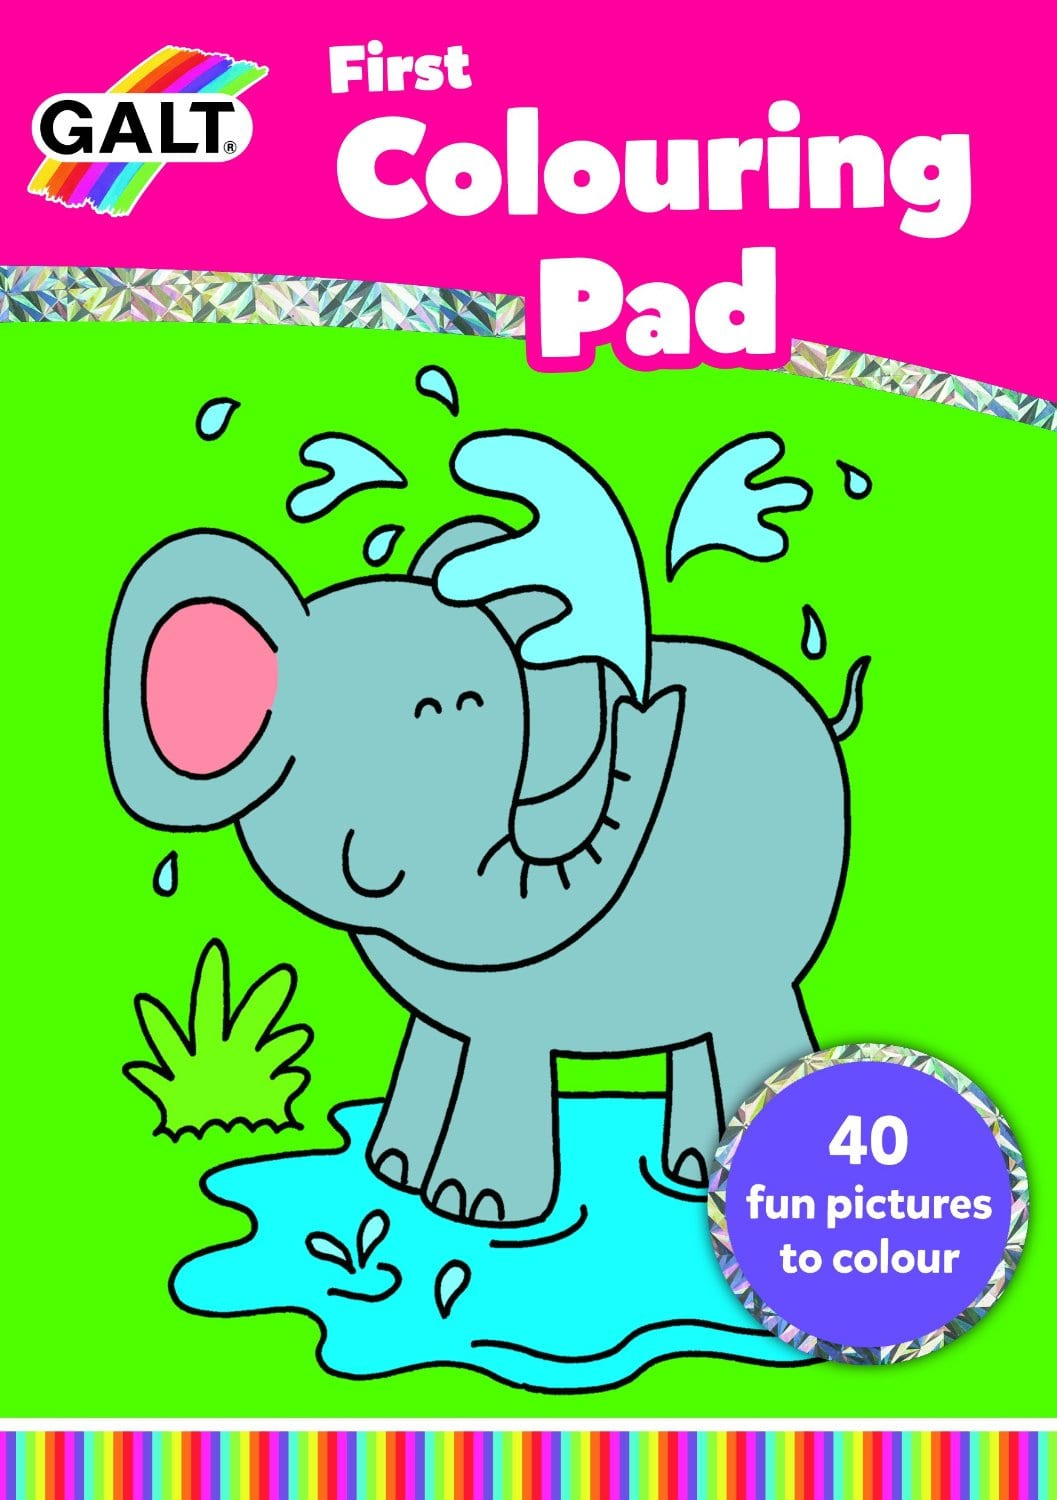 Galt Toys First Colouring Pad – Crocodile Stores